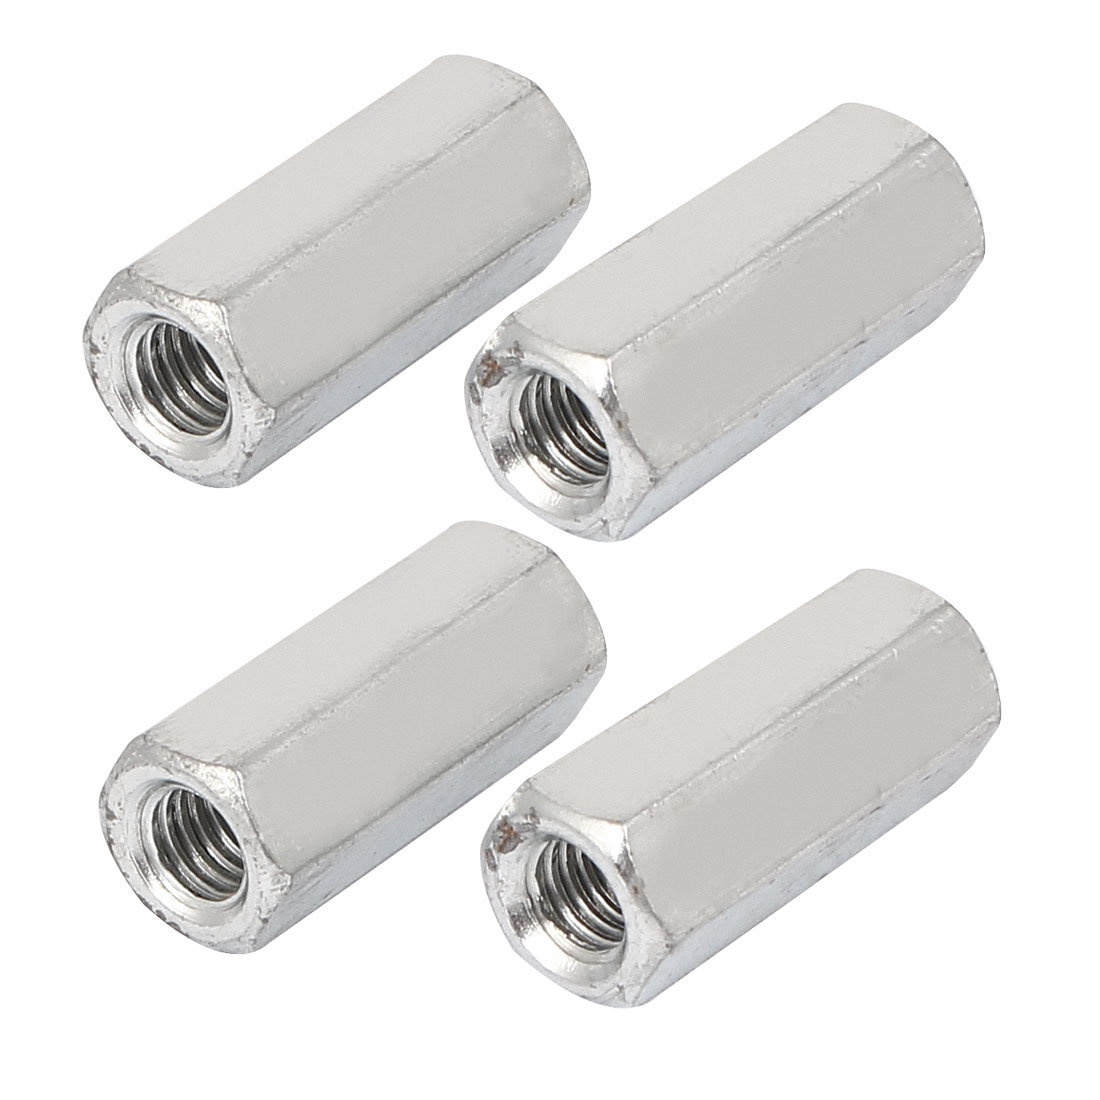 M6x25mm Stainless Steel Threaded Bar Rod Studding Hex Connector Deep Nut 4pcs